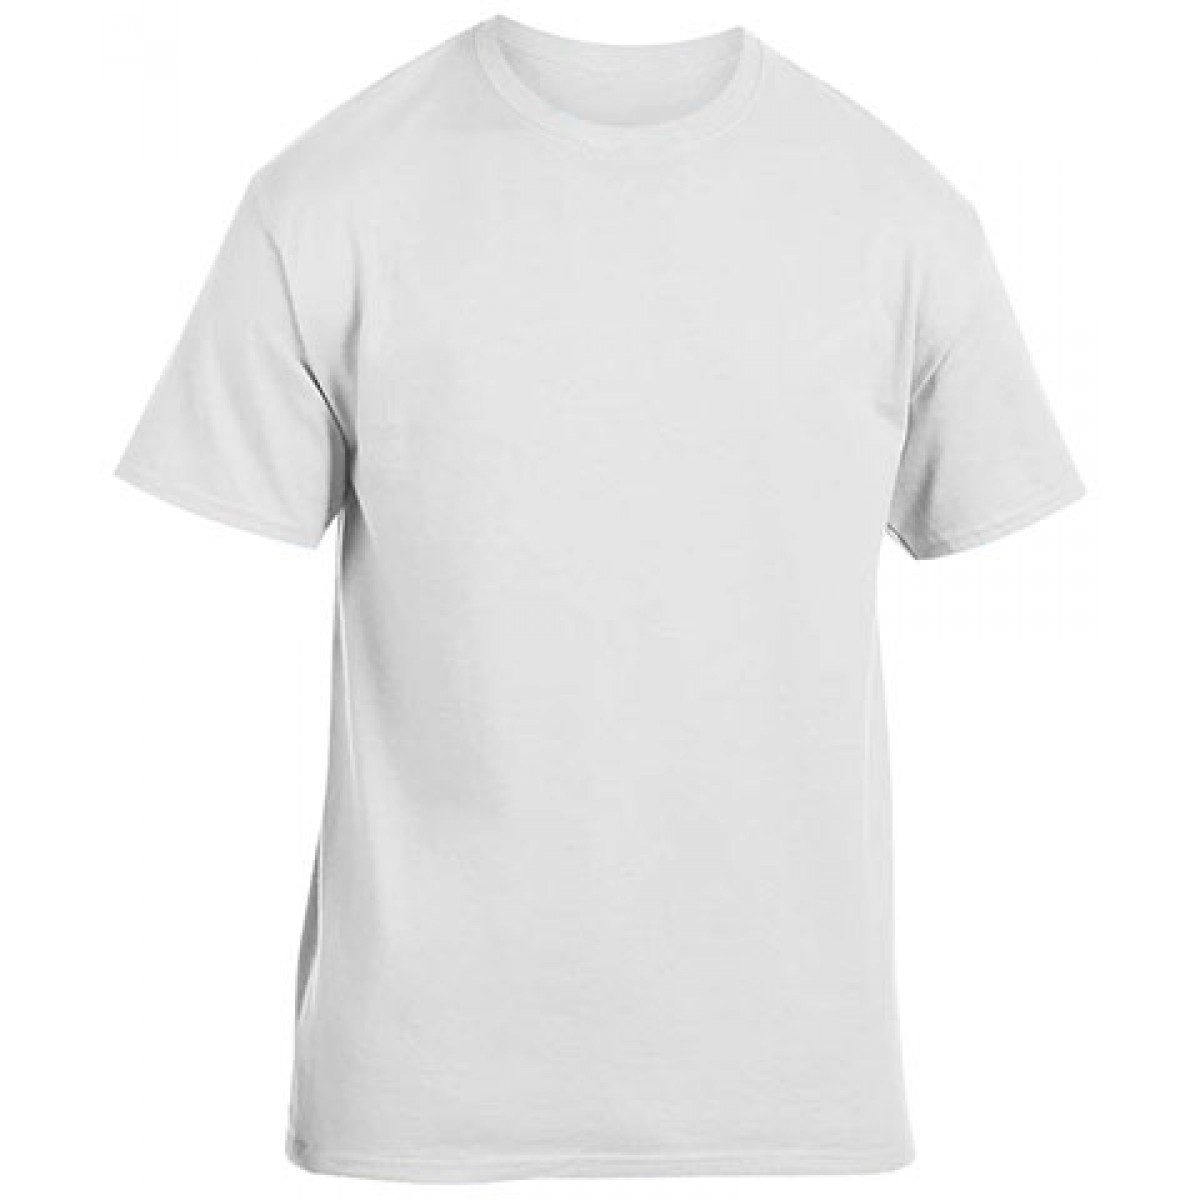 Cotton Short Sleeve T-Shirt-White-M